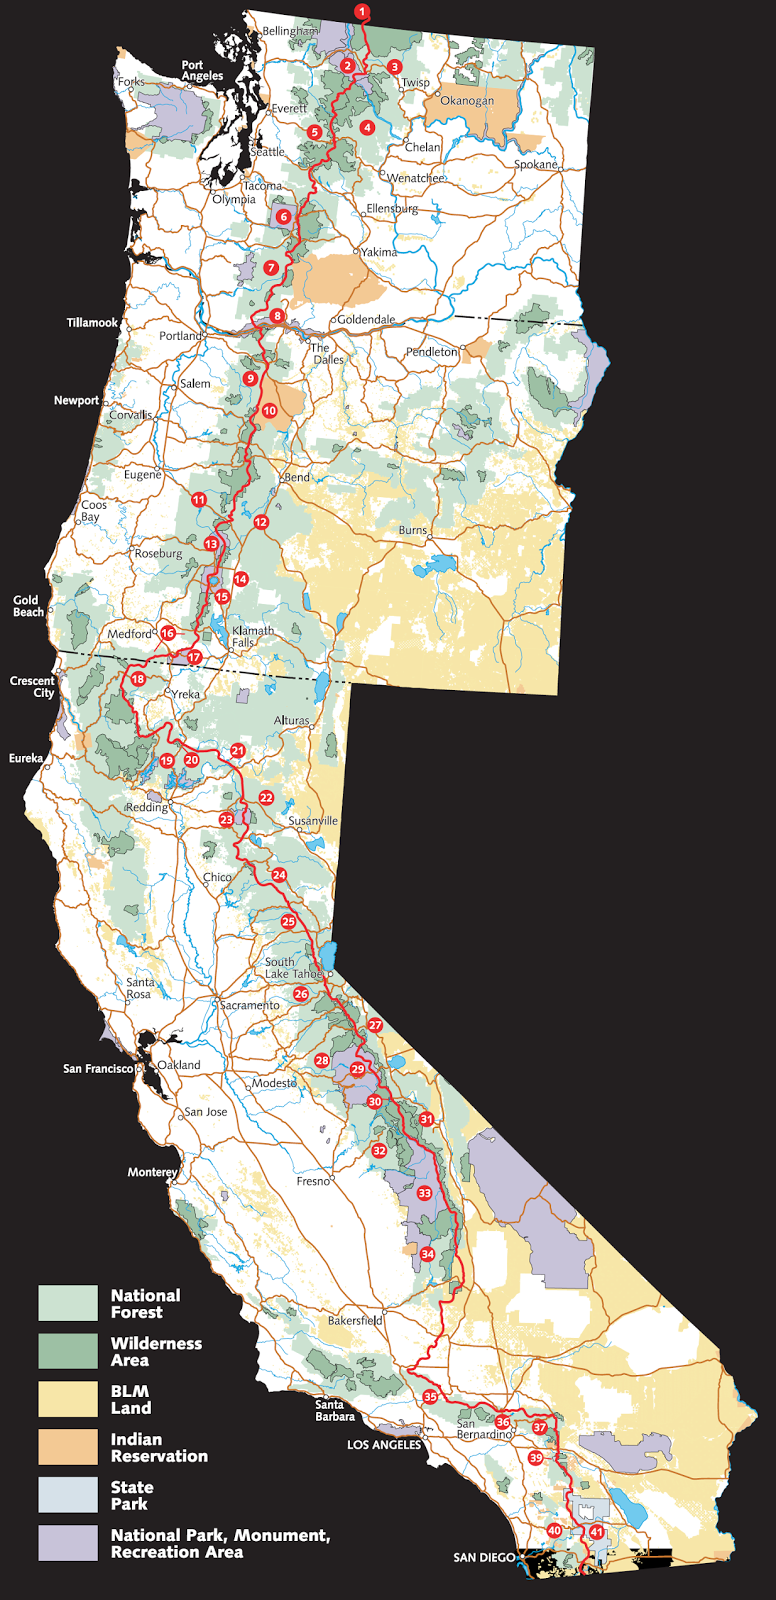 Map of the Pacific Crest Trail (PCT)